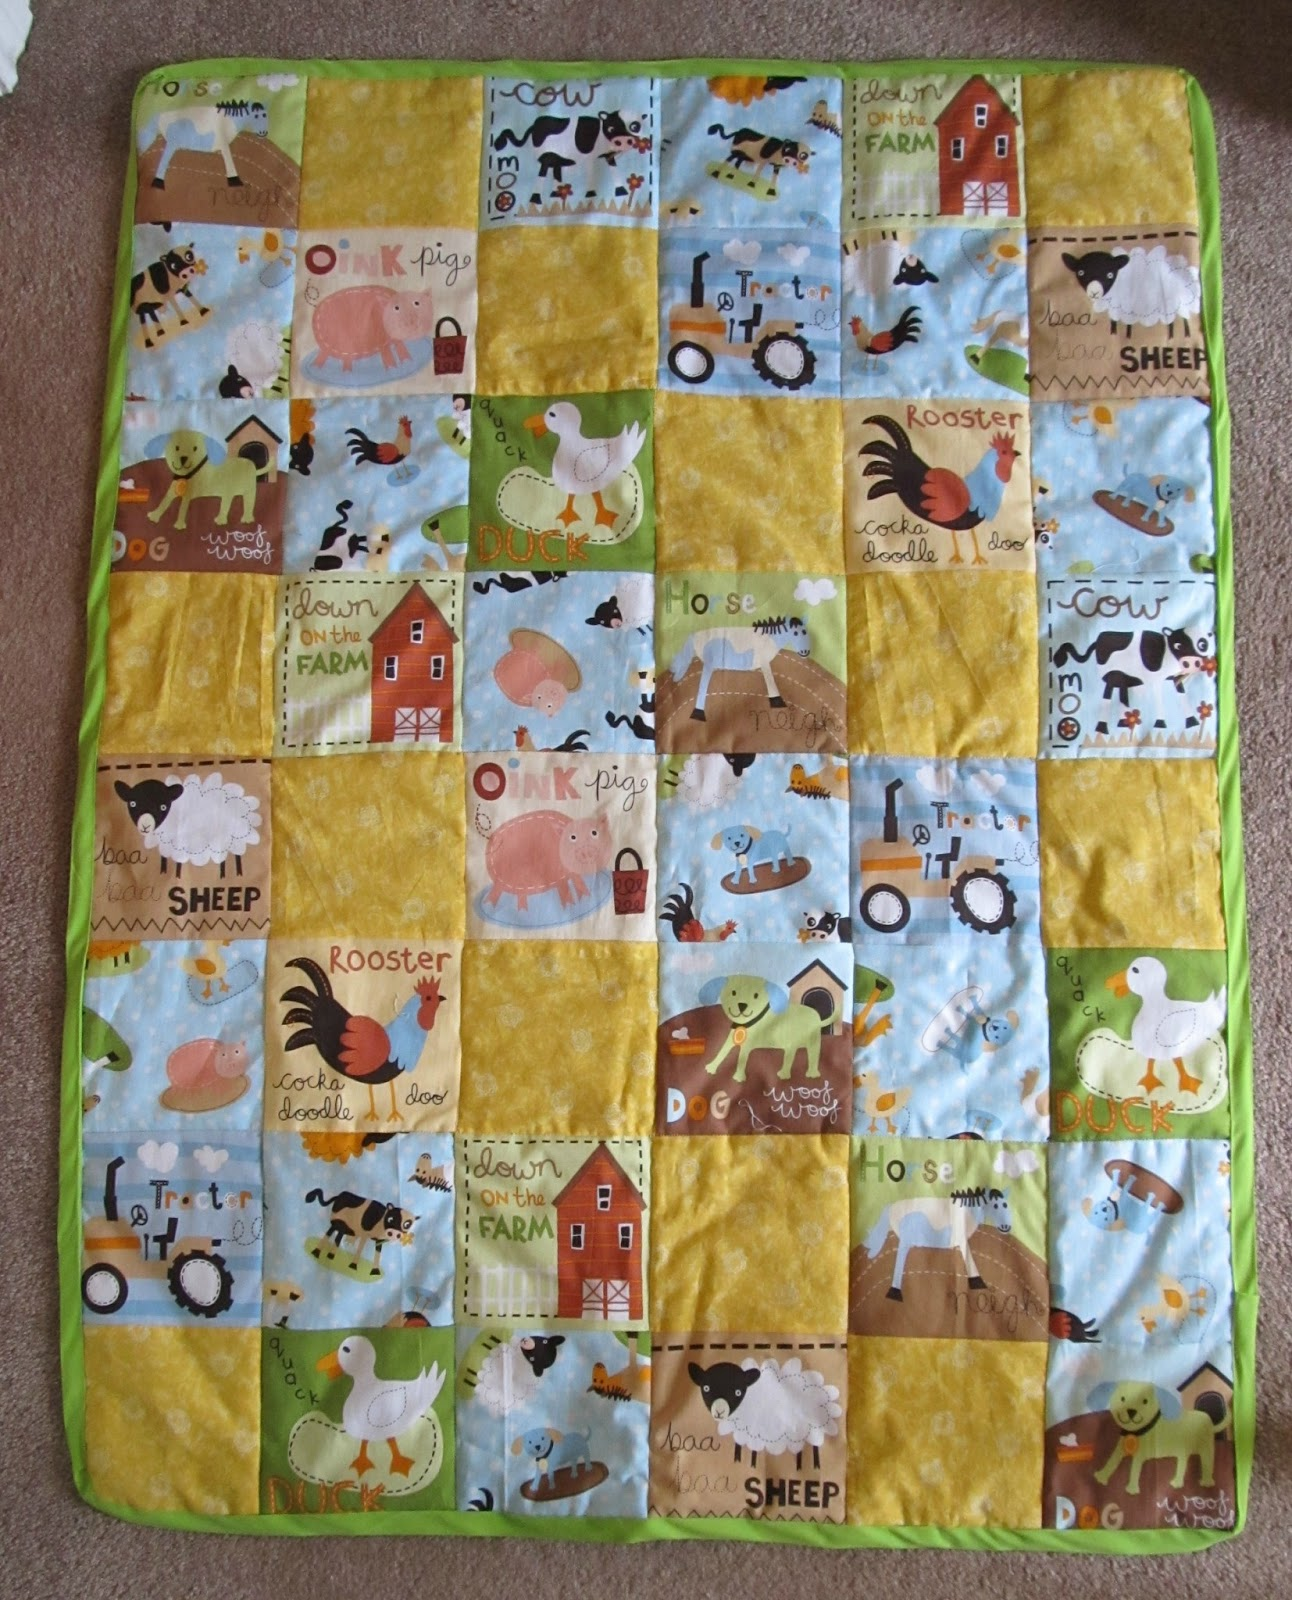 Queen B - Creative Me: A Down on the Farm Baby Quilt